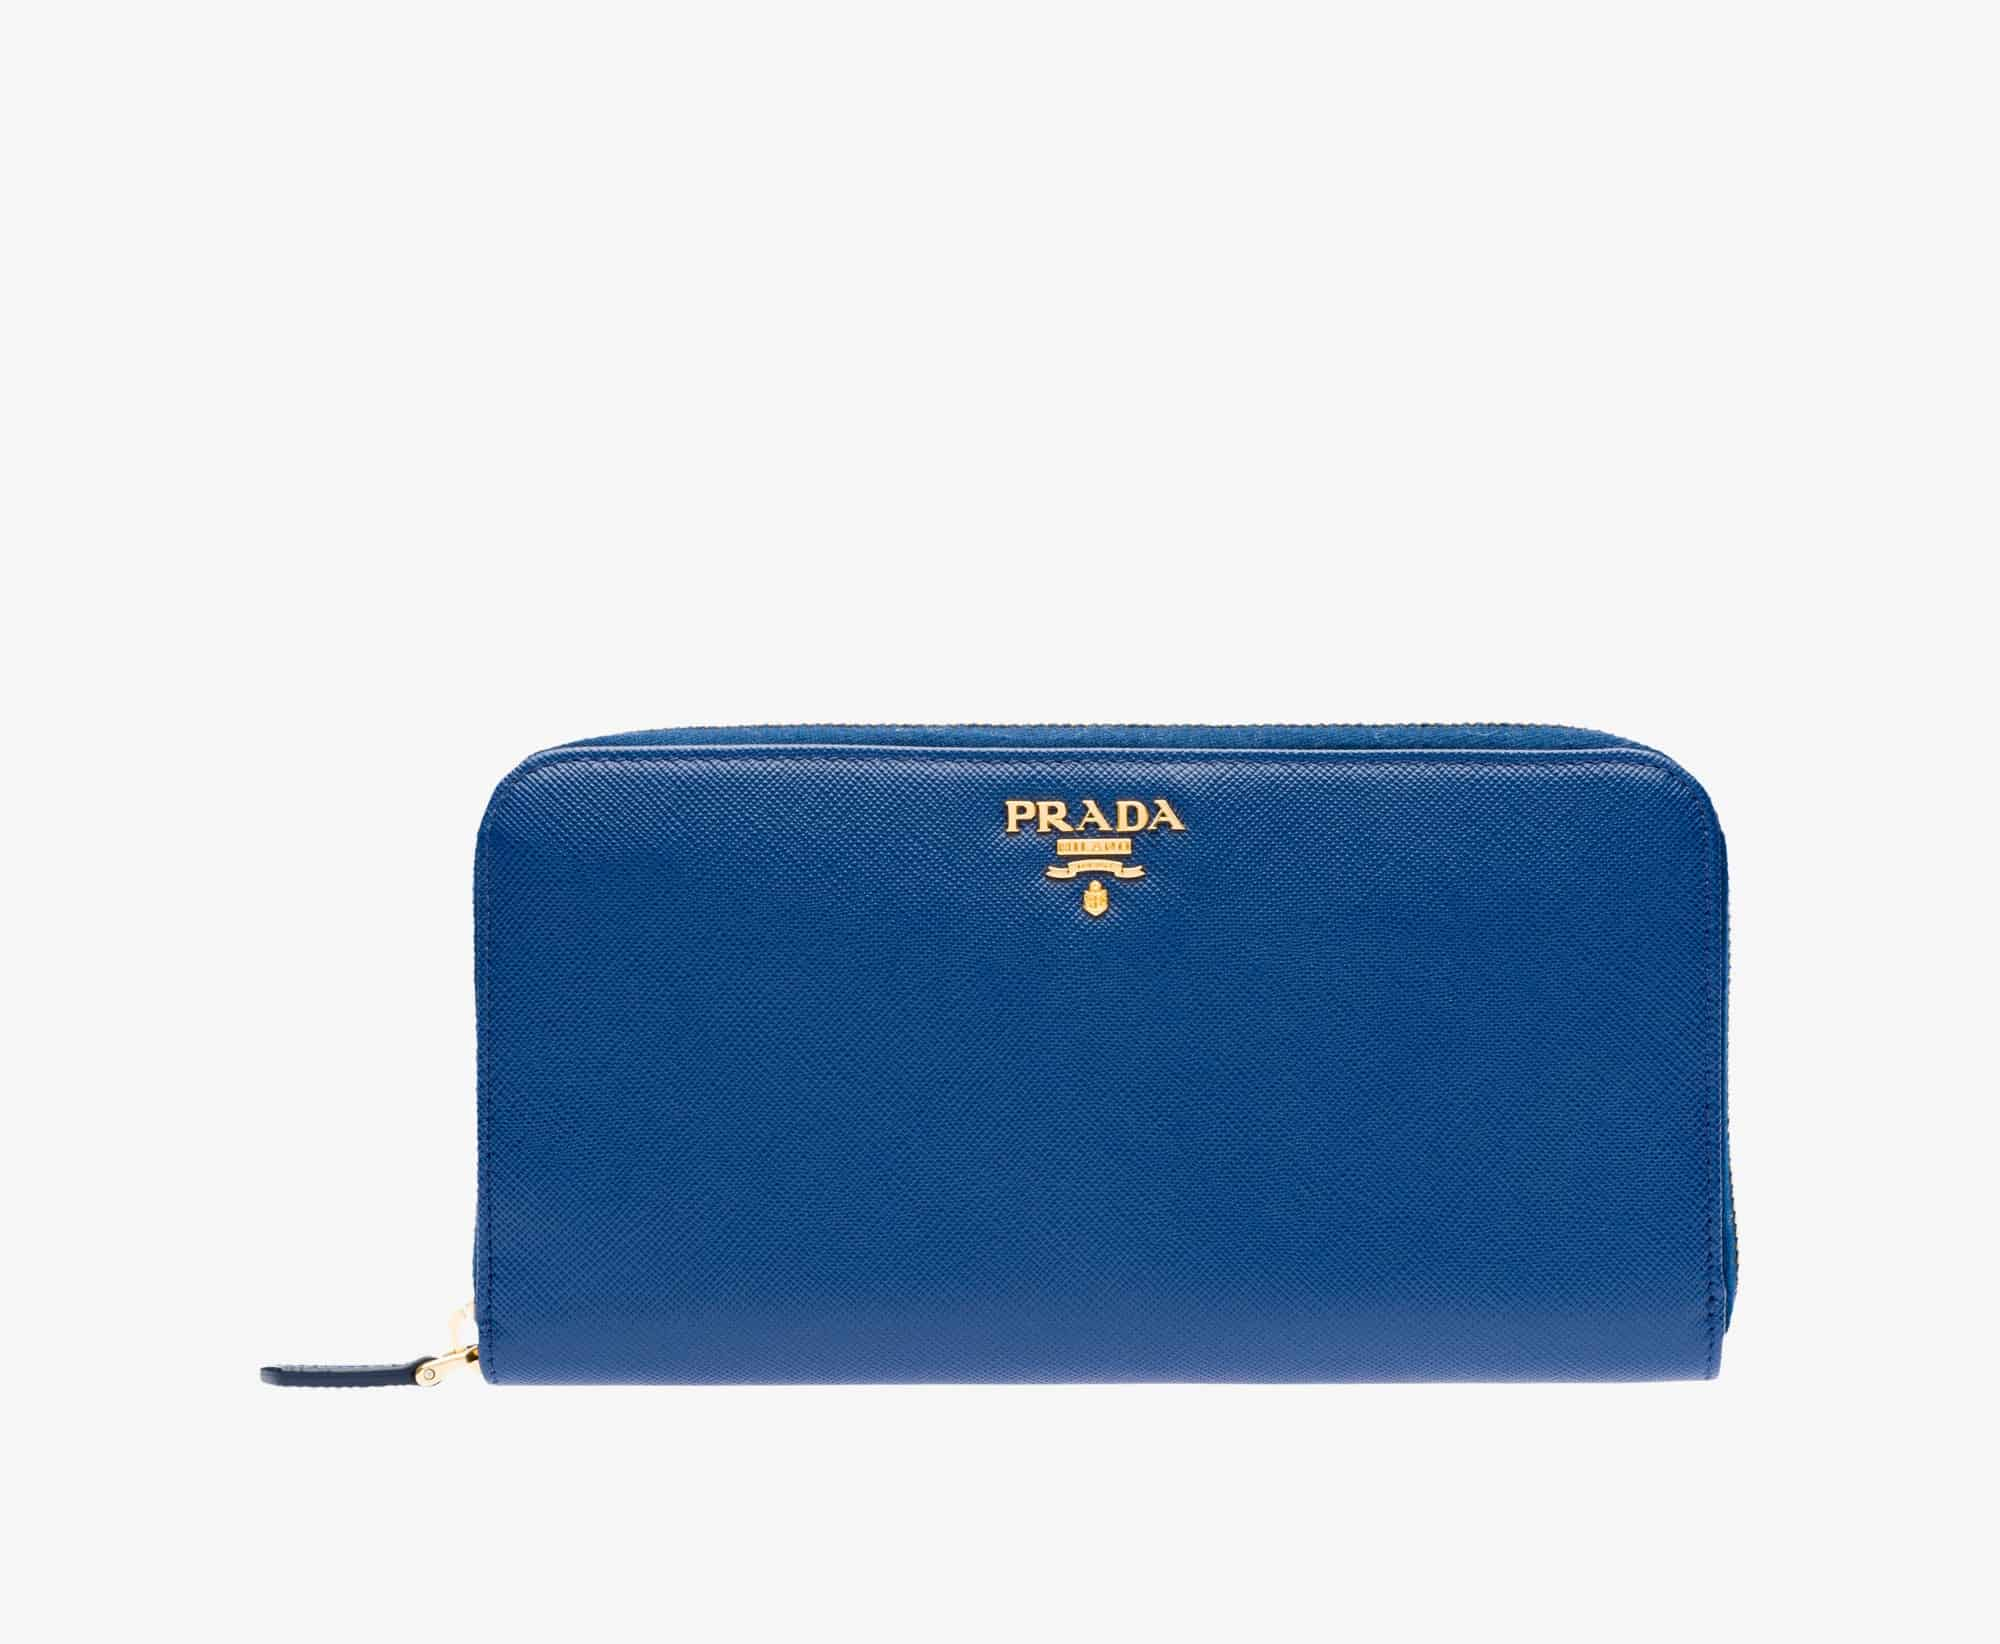 online store 033e8 ee965 Prada-Women-Wallet-Cornflower-Blue-1ML506-QWA-F0016